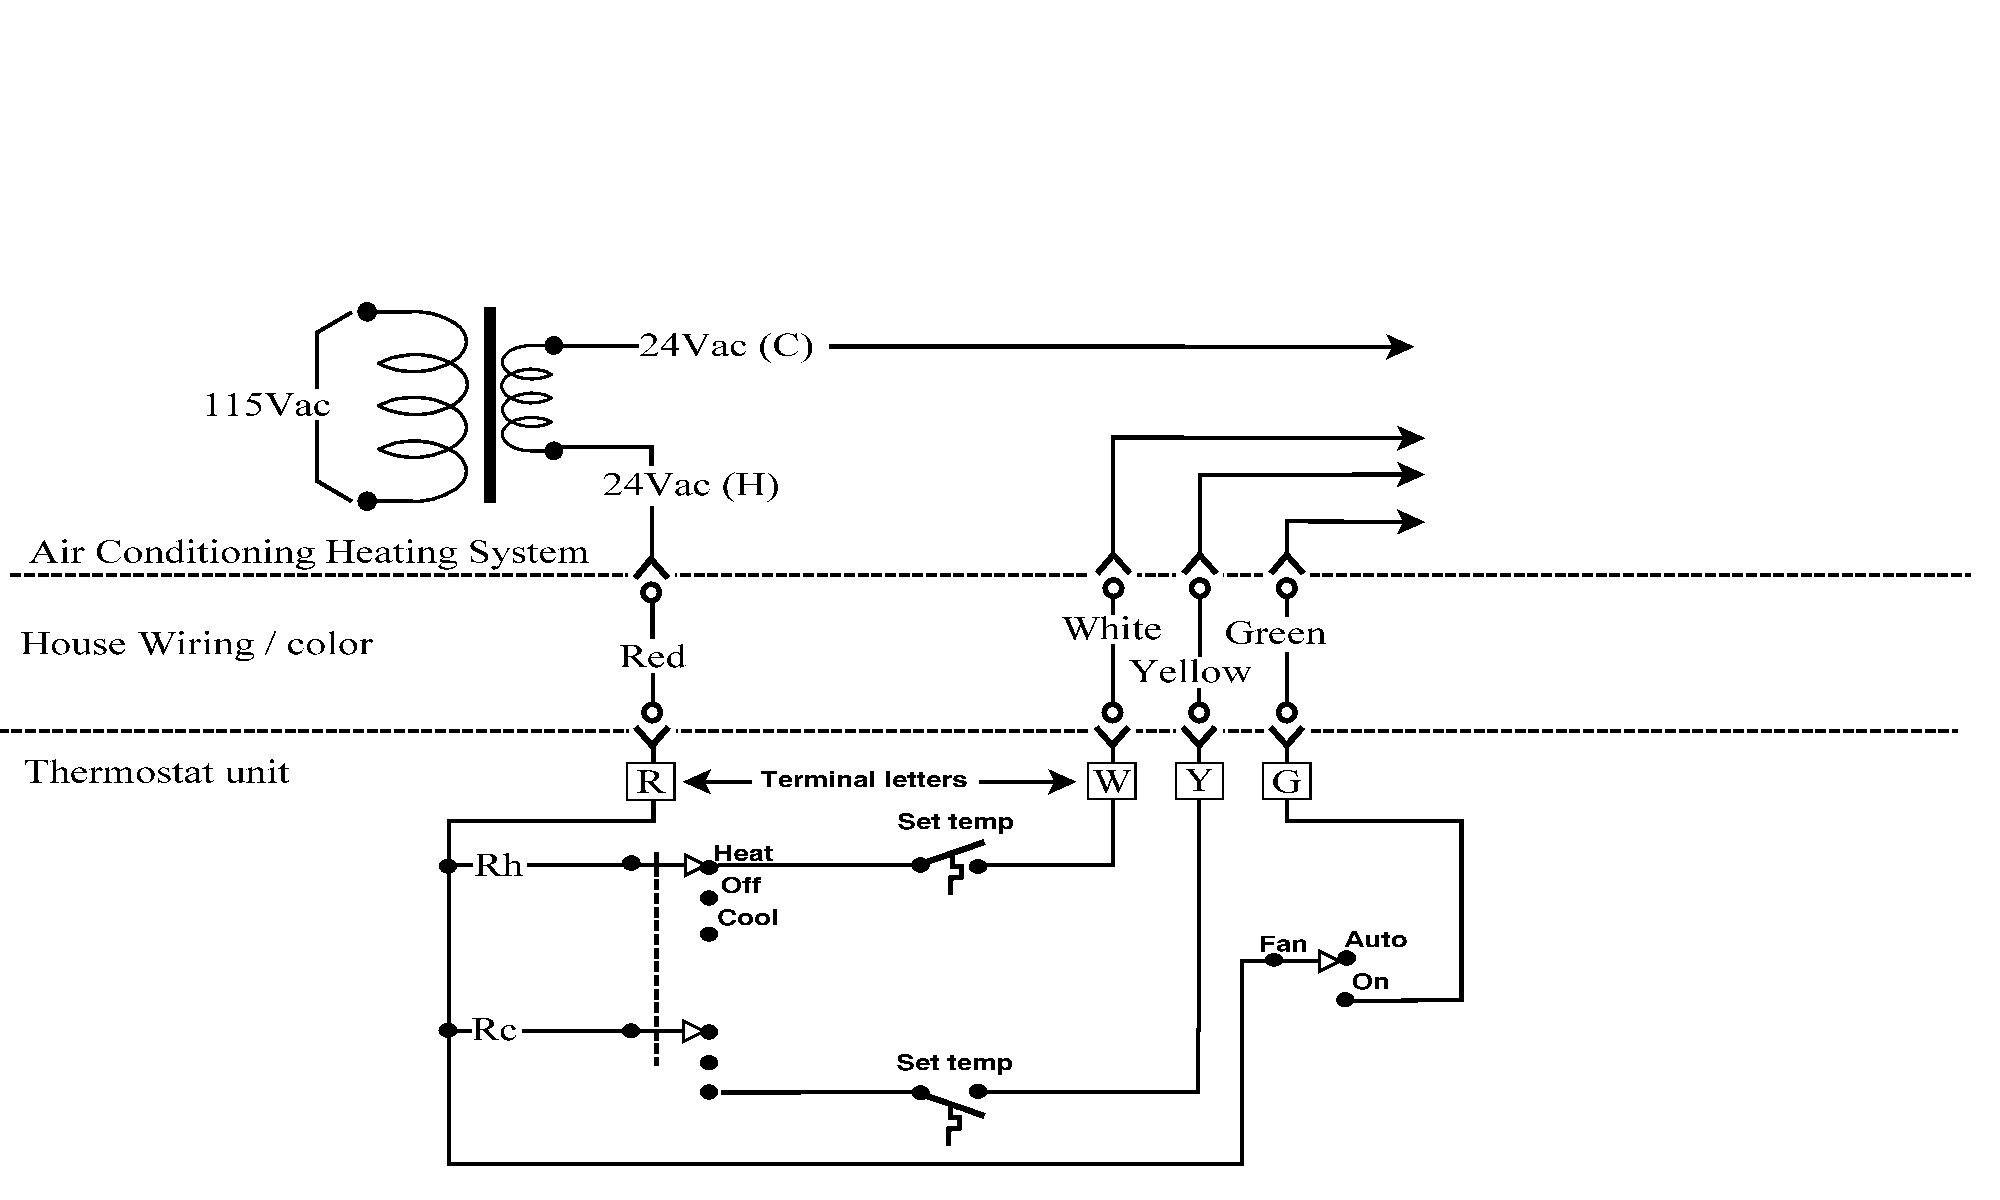 Nest thermostat Wiring Diagram Nest Learning thermostat